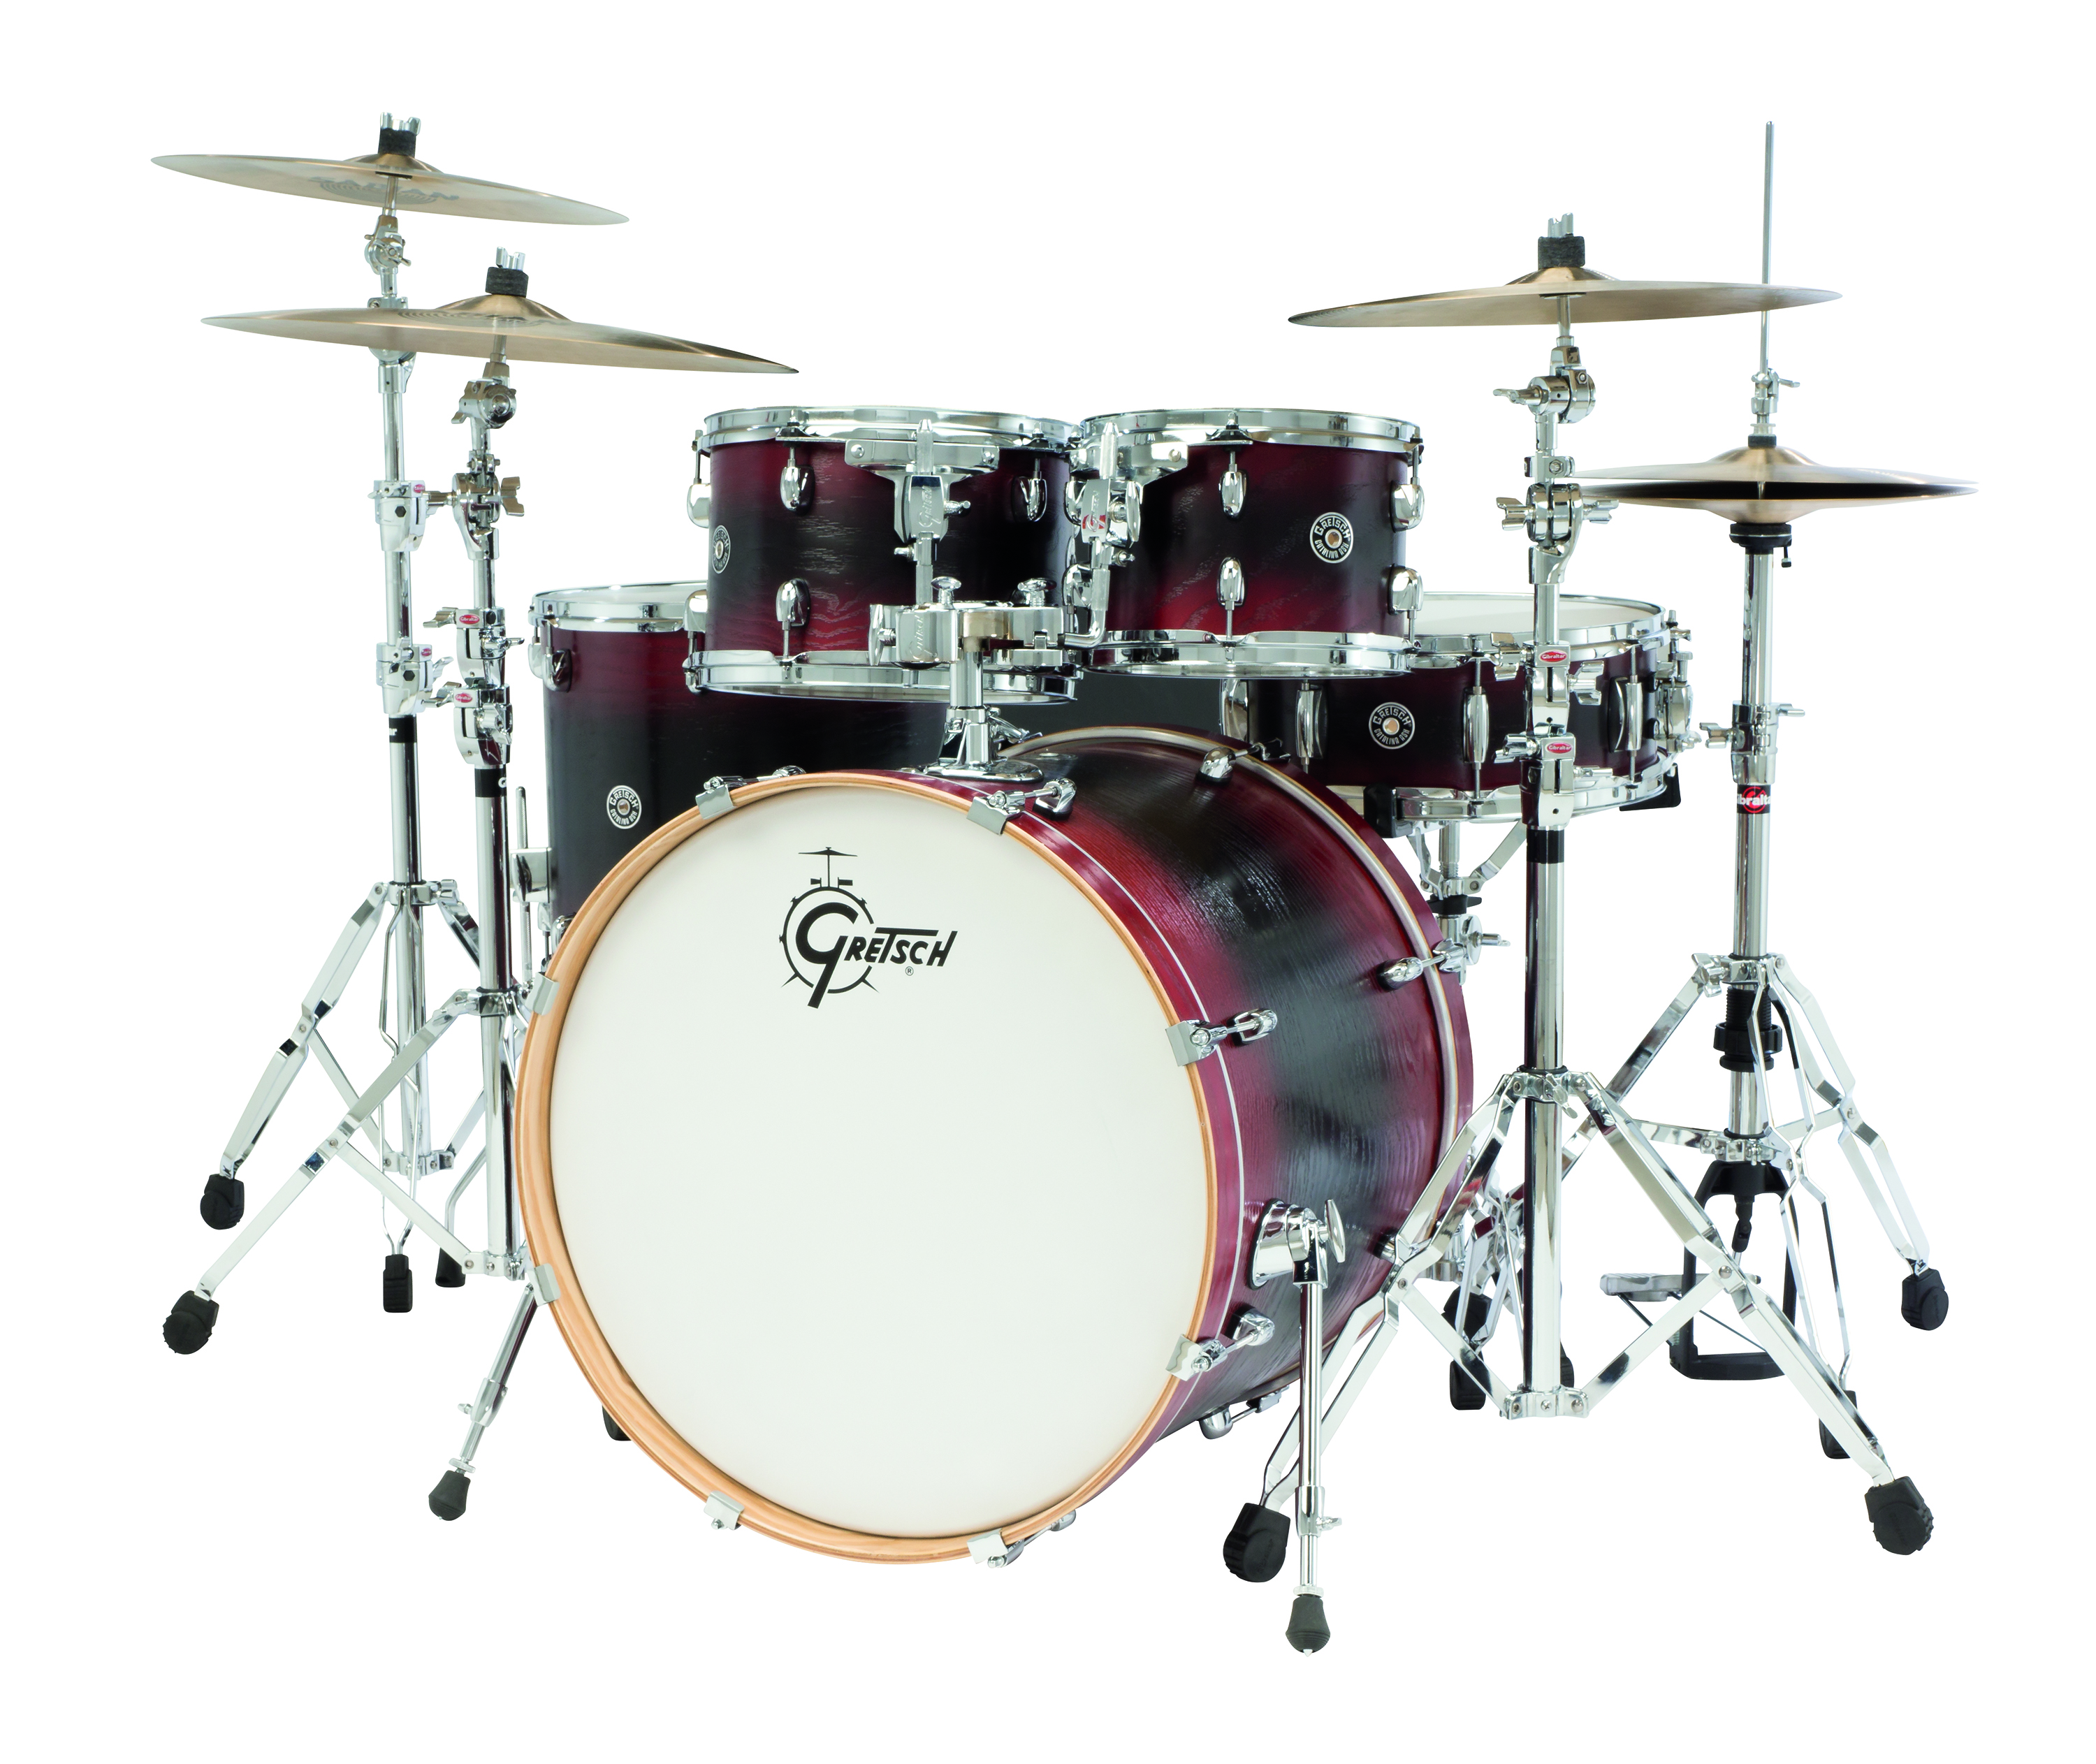 e5003e4b69c9 Product Close-Up  Gretsch Catalina Ash Drumset (December 2014 Issue ...